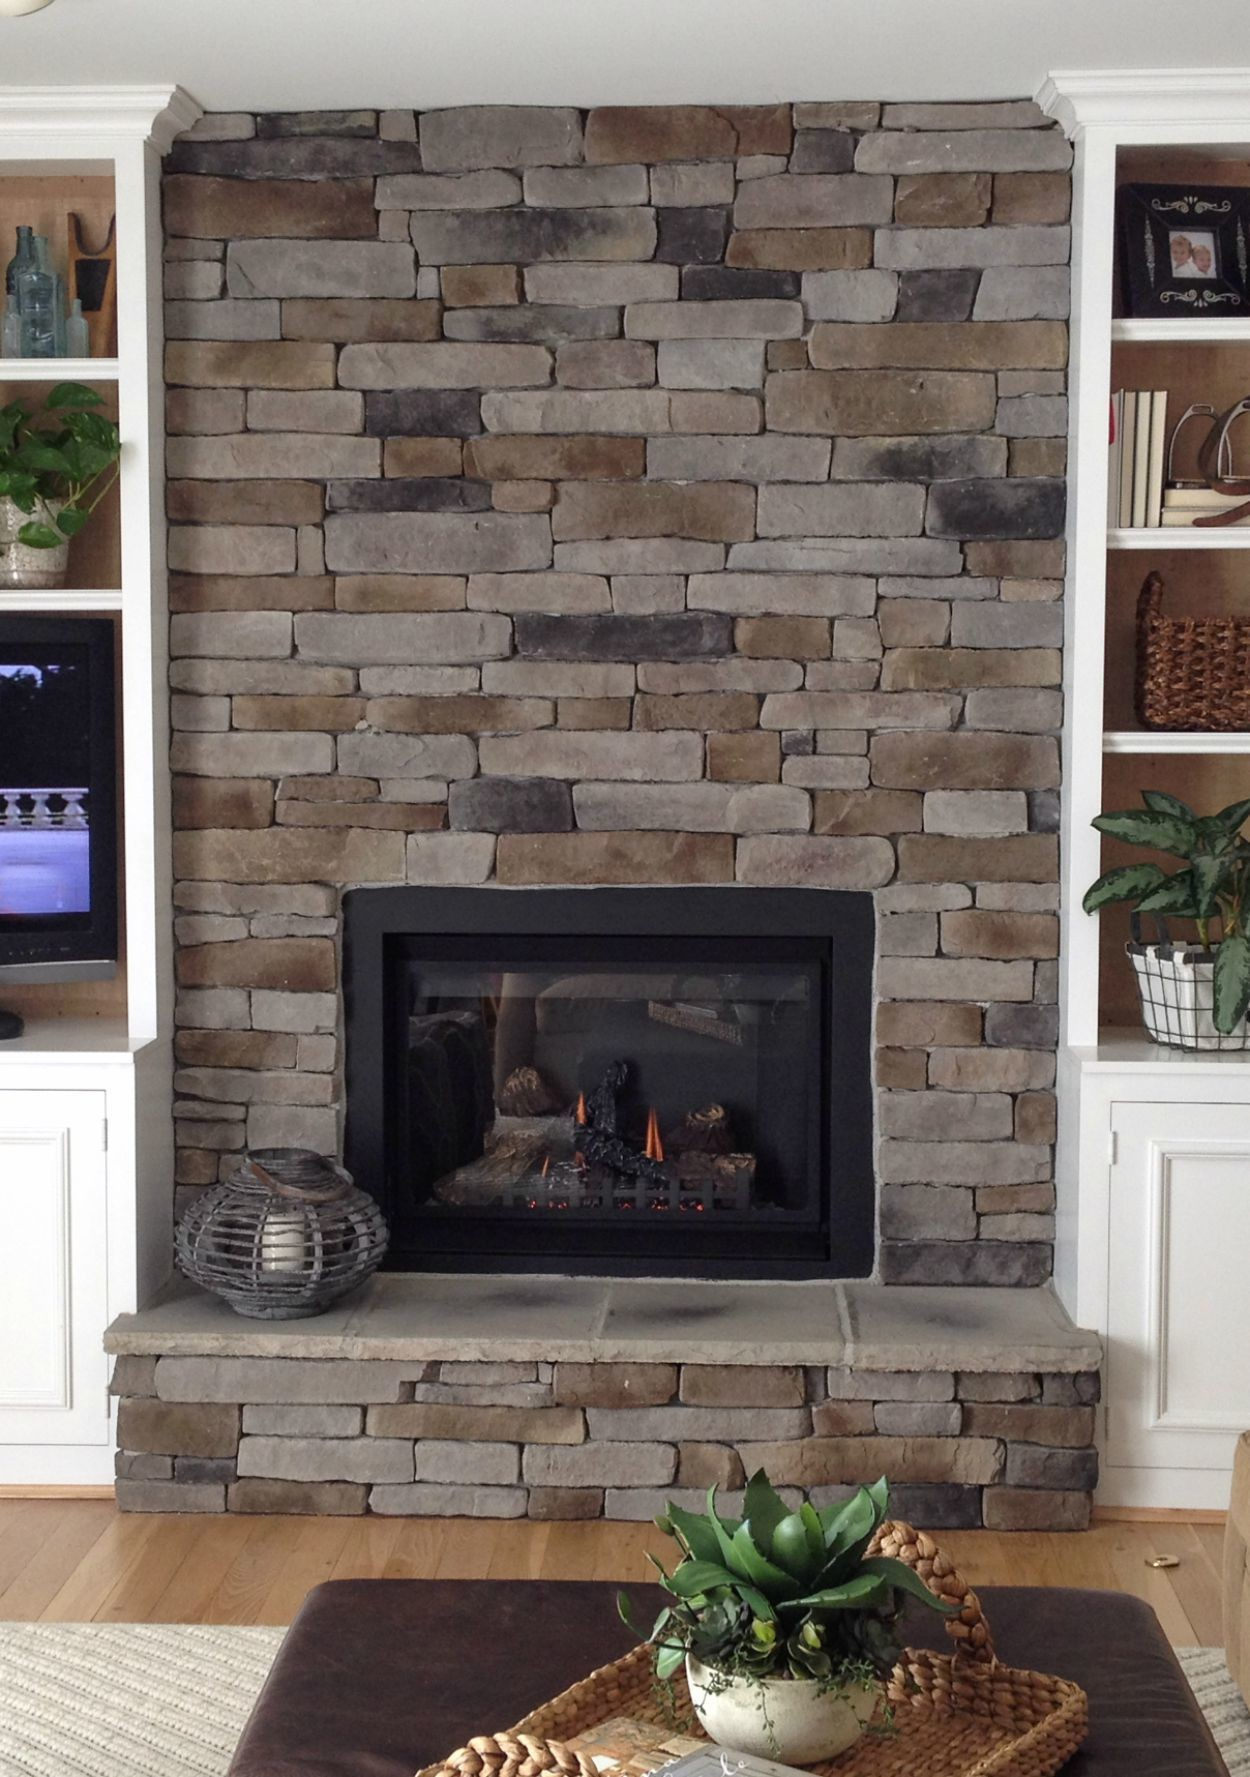 How to Create the Stacked Stone Fireplace Look on a Bud